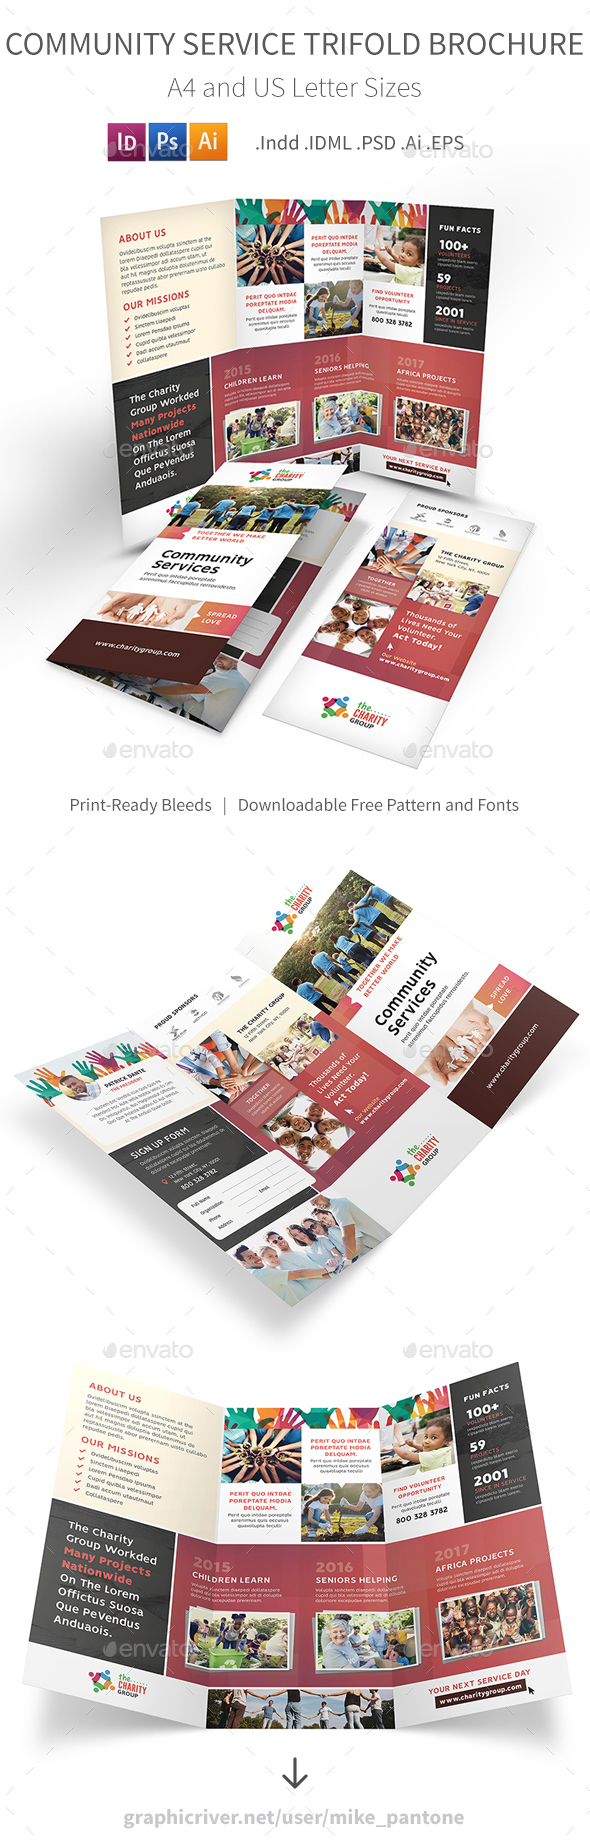 GraphicRiver Community Service Trifold Brochure 2 21117913